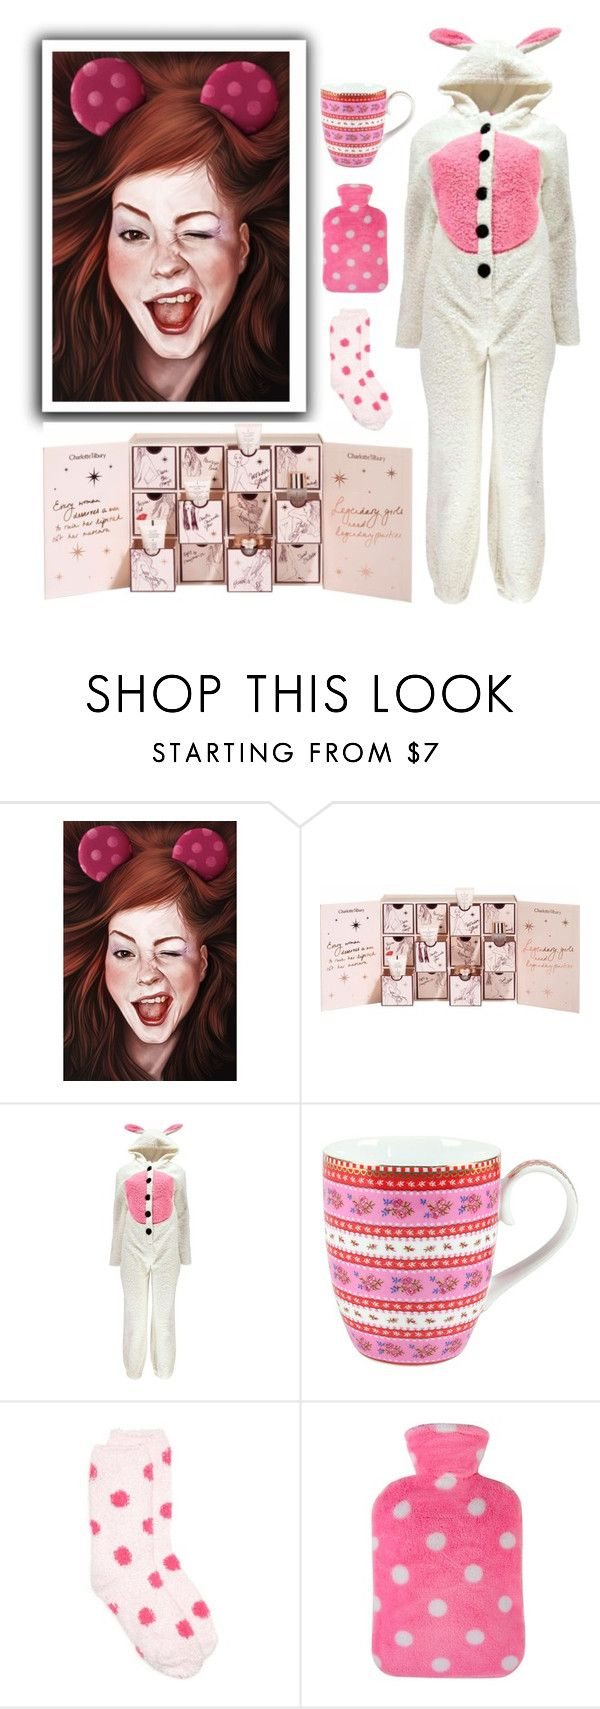 """""""Counting down the days"""" by molly2222 ❤ liked on Polyvore featuring Charlotte Tilbury, Boohoo, PiP Studio, New Directions, onesie and advent"""